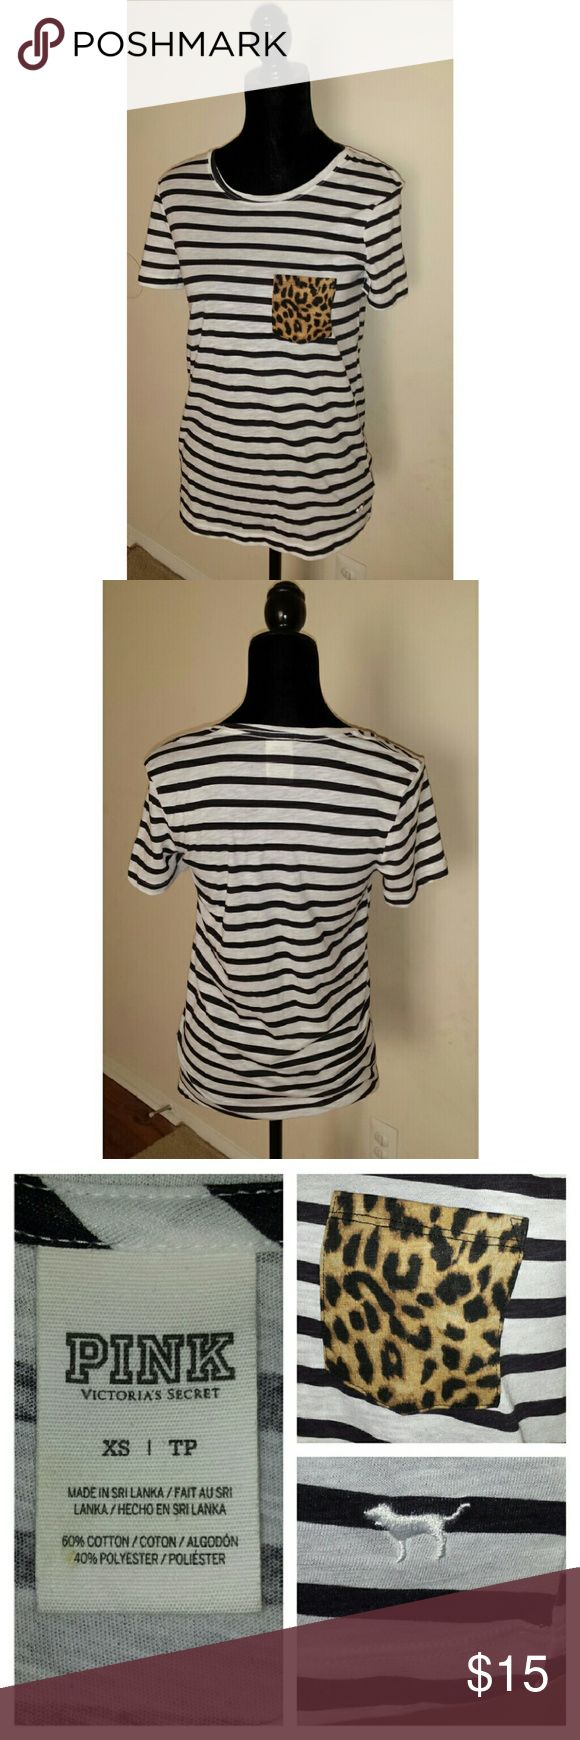 Victoria Secret PINK Stripe Boyfriend Pocket Shirt * * * Great pre-owned condition! * * *   Women's  Victoria's Secret PINK Size: XS Black/White Stripes Boyfriend Pocket T-Shirt Short Sleeve Leopard/Cheetah Print Pocket  60% Cotton / 40% Polyester  Smoke and pet-free home PINK Victoria's Secret Tops Tees - Short Sleeve